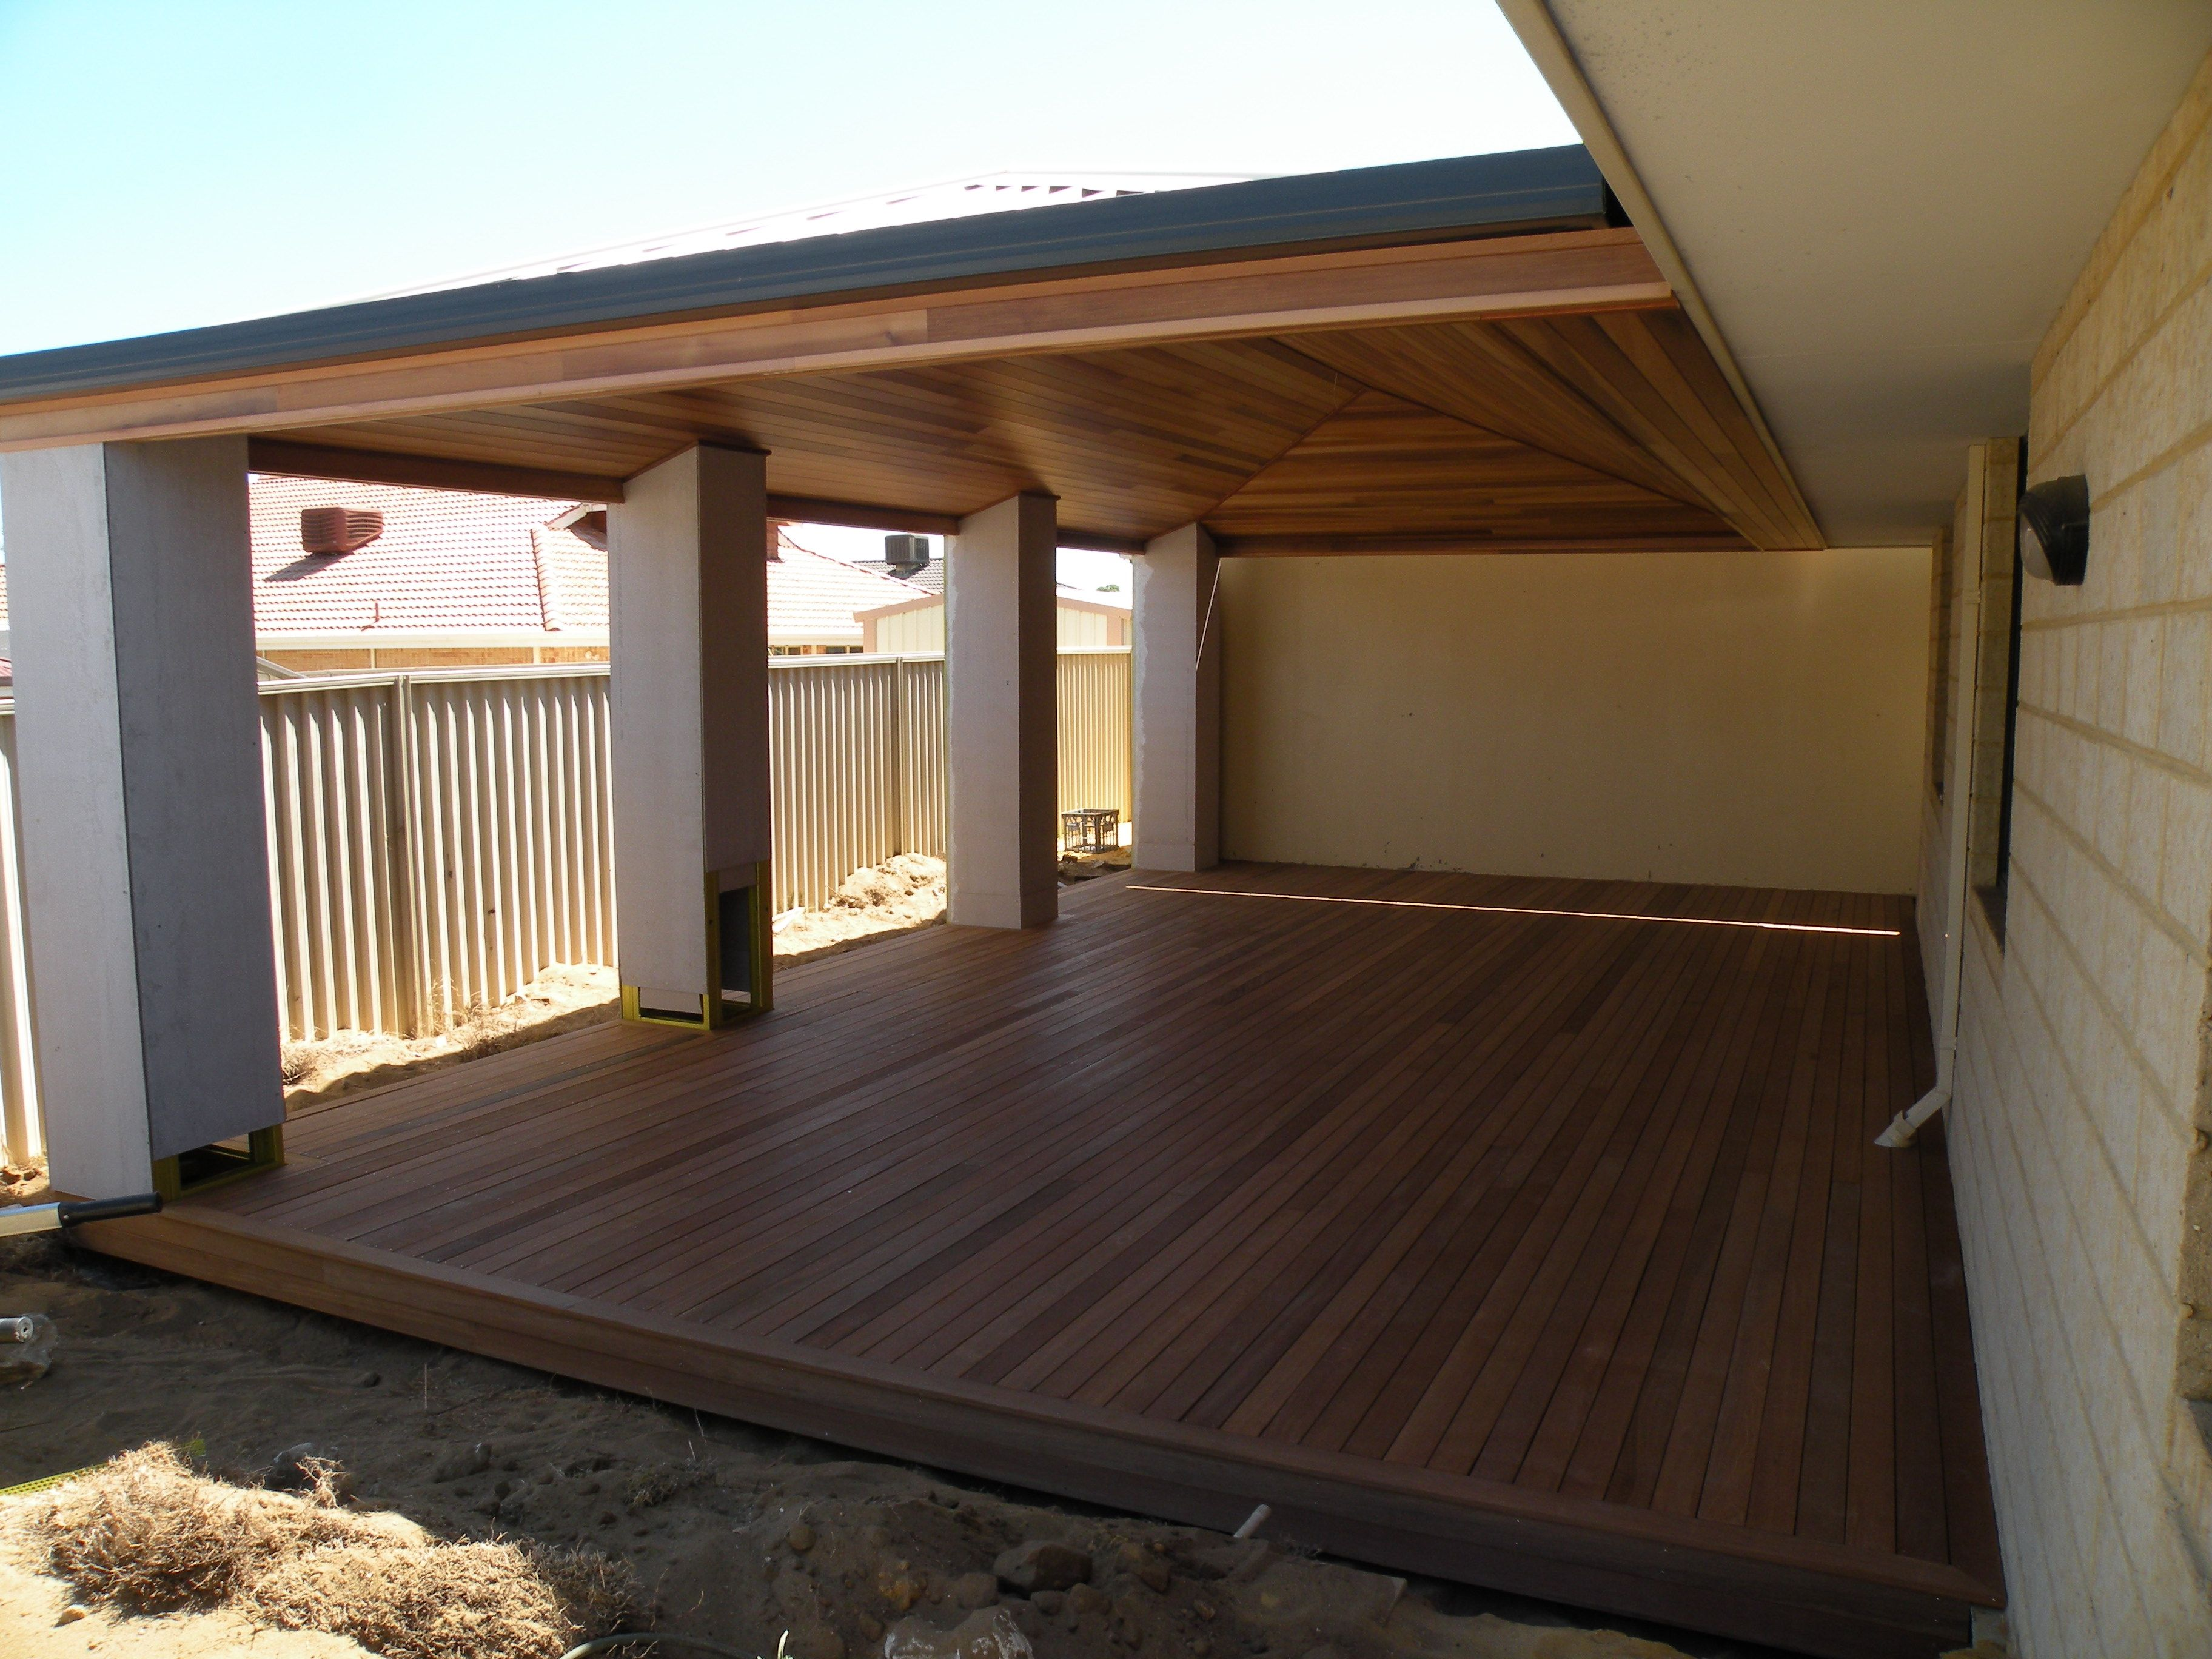 Timber Deck And Ceiling Craigmeycarpentry Outdoorliving Timberdeck Inspiration